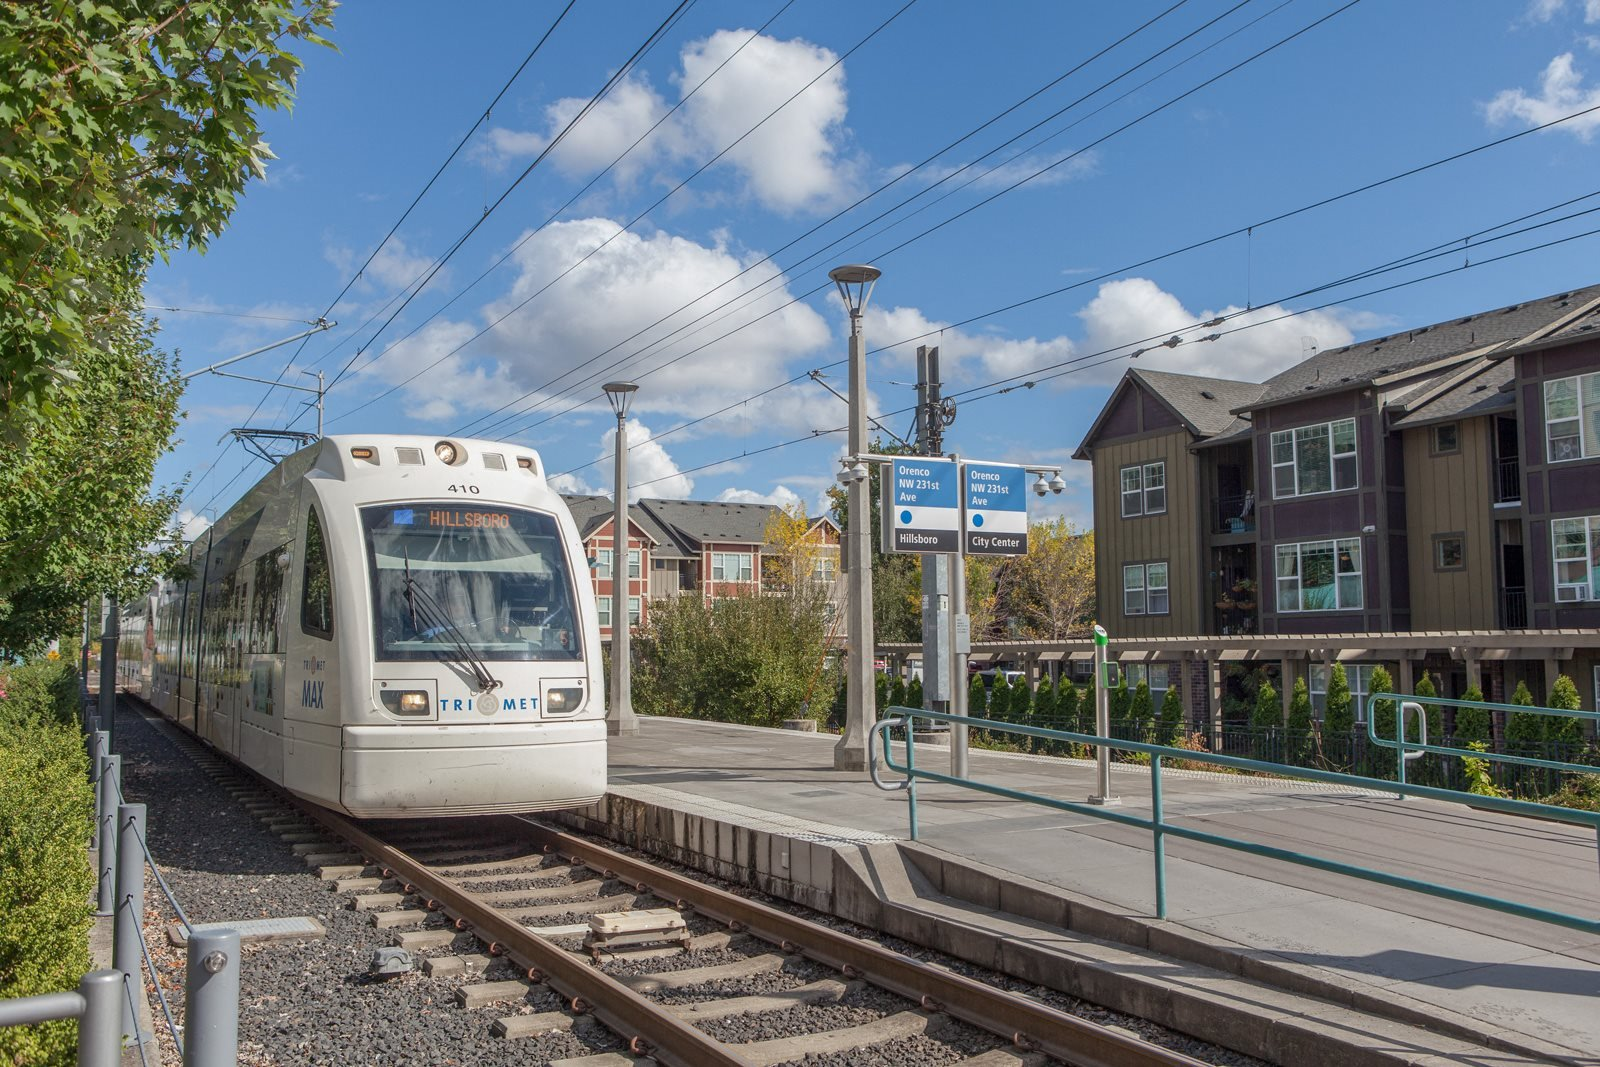 Convenient Hillsboro Location at Platform 14, 1030 NE Orenco Station Pkwy, Hillsboro